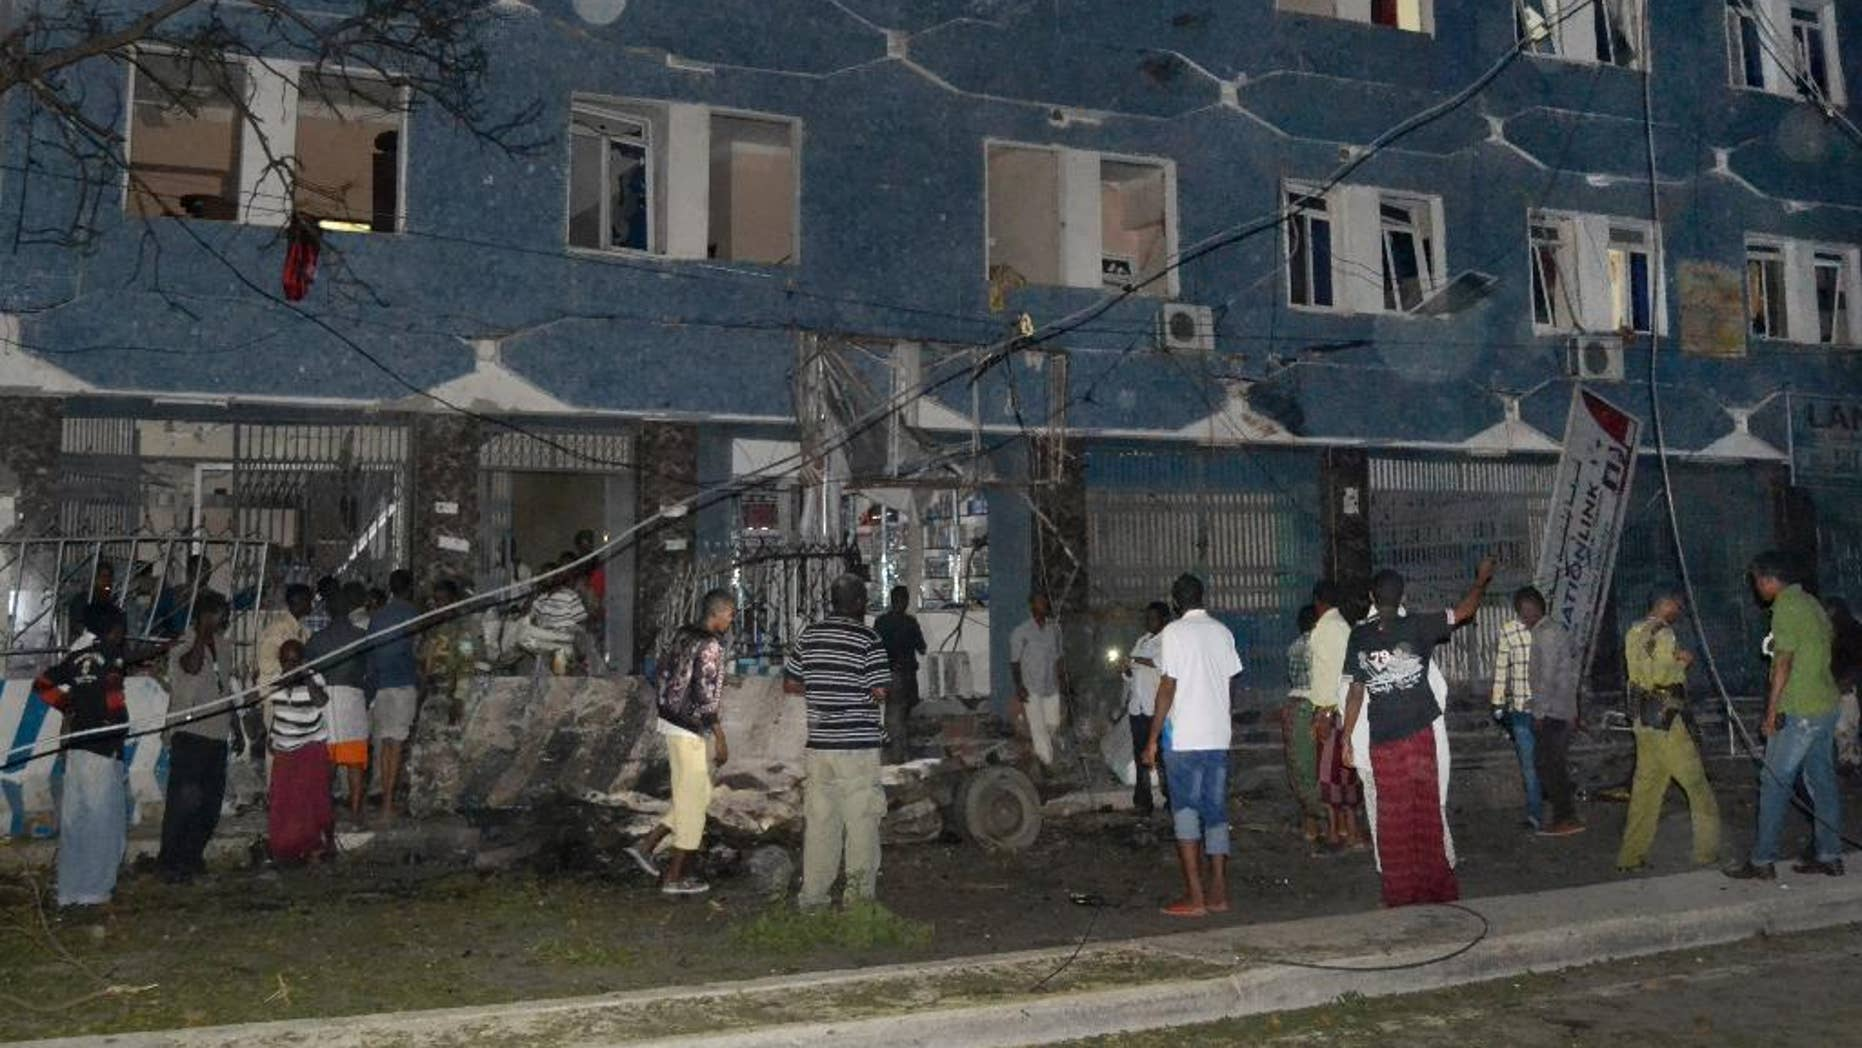 Somali security forces and civilians gather outside the Weheliye hotel after it was stormed by militants in Mogadishu, Somalia, Friday, July 10, 2015. Suspected Islamic militant gunmen stormed two hotels in Mogadishu, a Somali police official said Friday. (AP Photo)